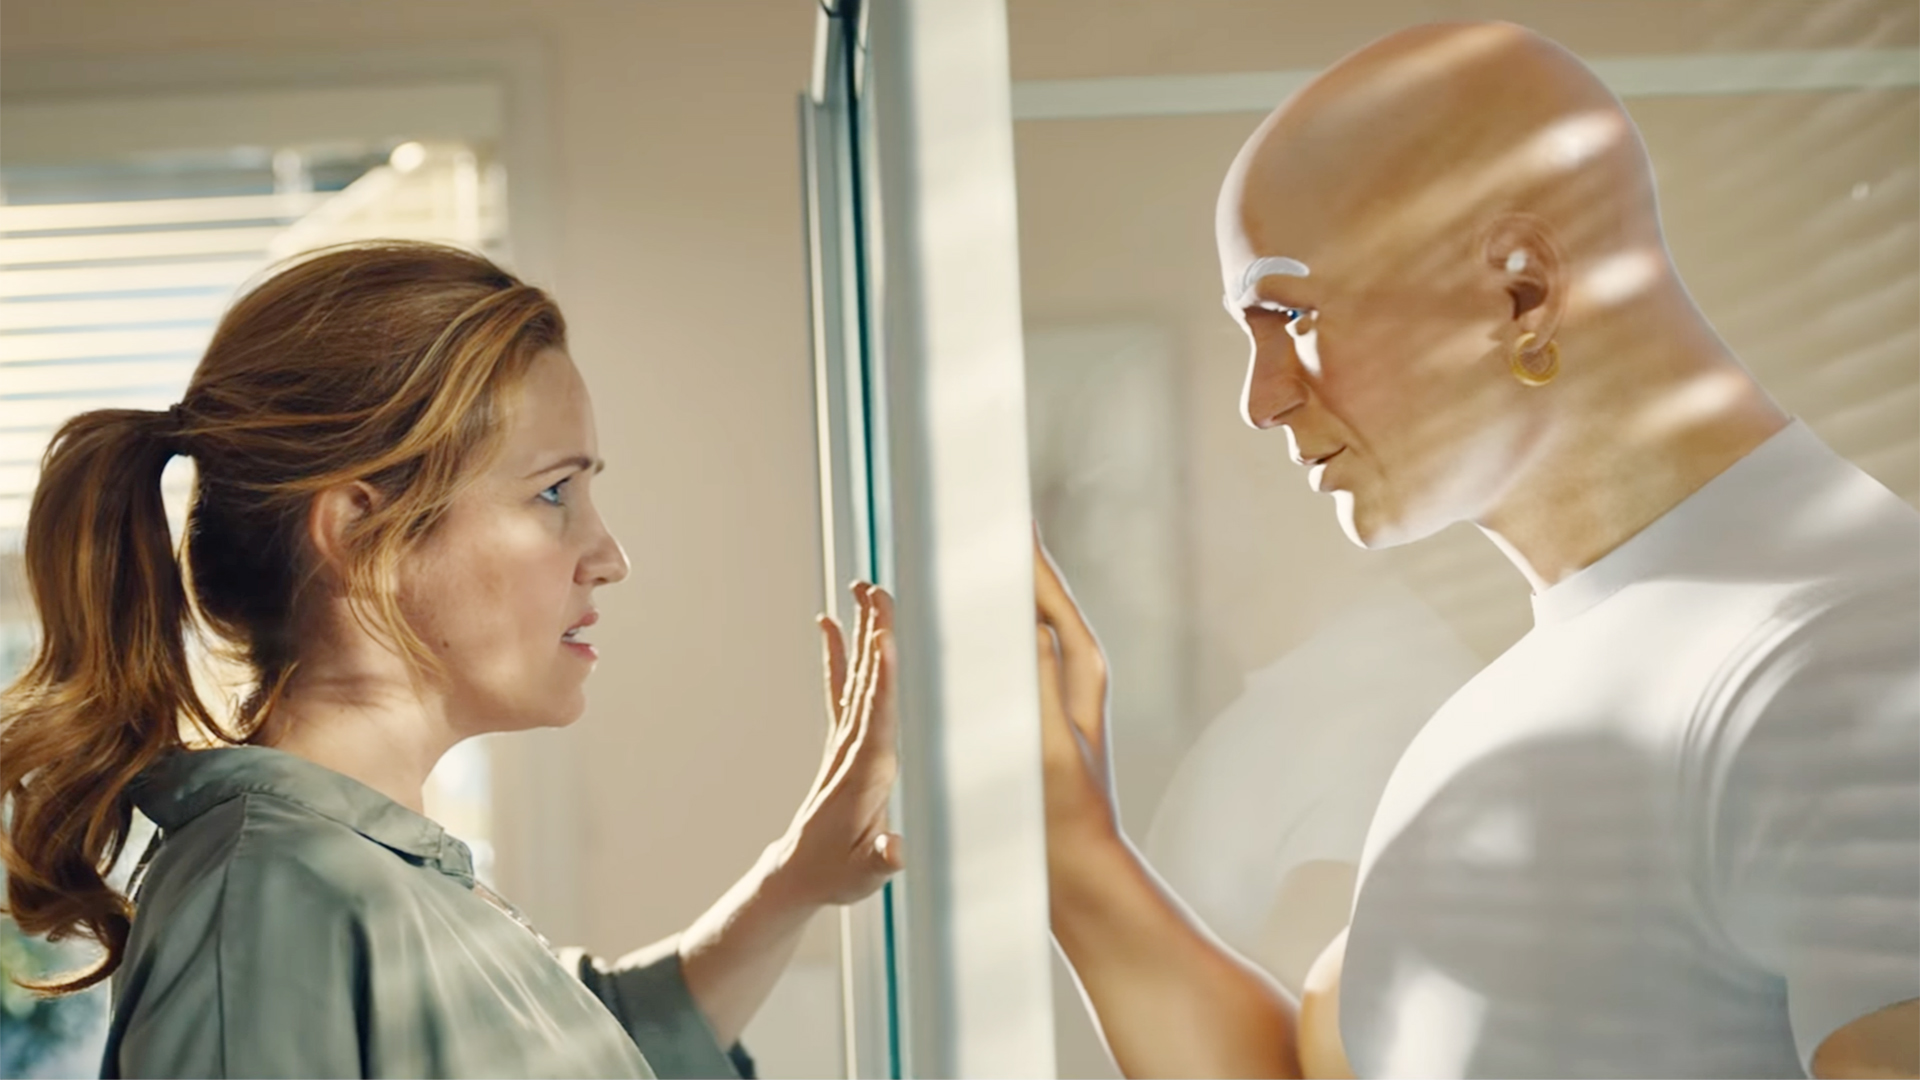 Mr. Clean gets down and dirty in sexy new Super Bowl ad - TODAY.com